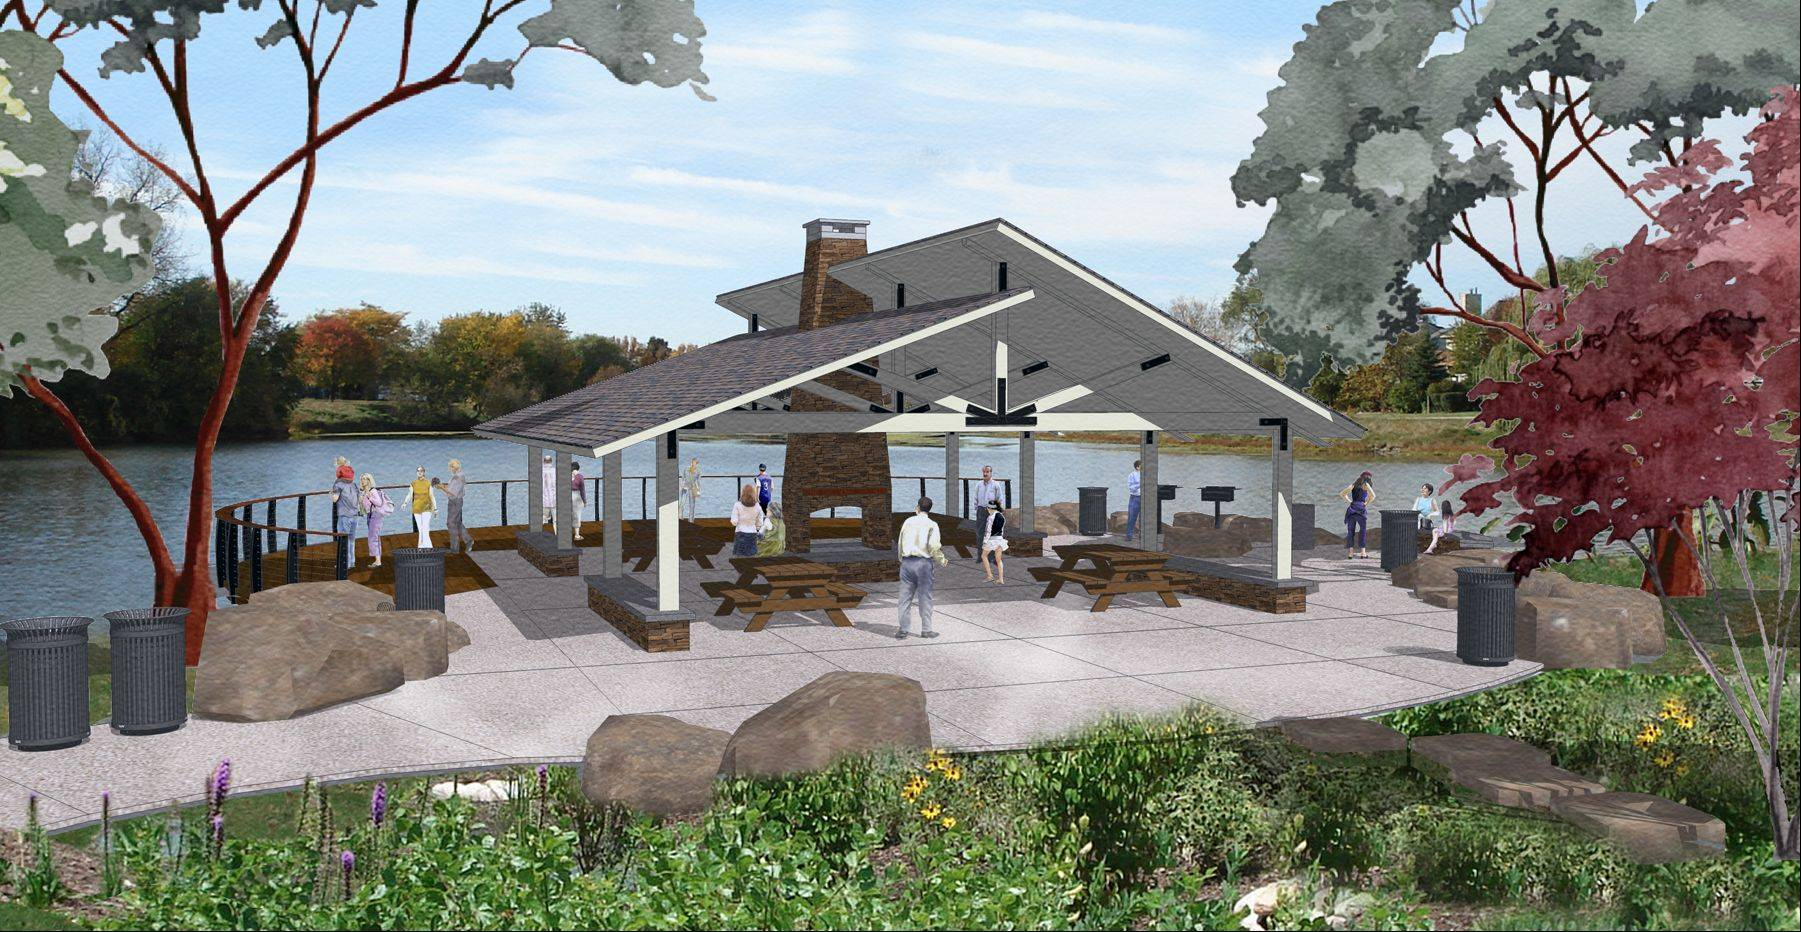 An artist's rendering shows the new four-season shelter and scenic overlook that will replace the current shelter at Waubonsie Lake Park in Aurora.